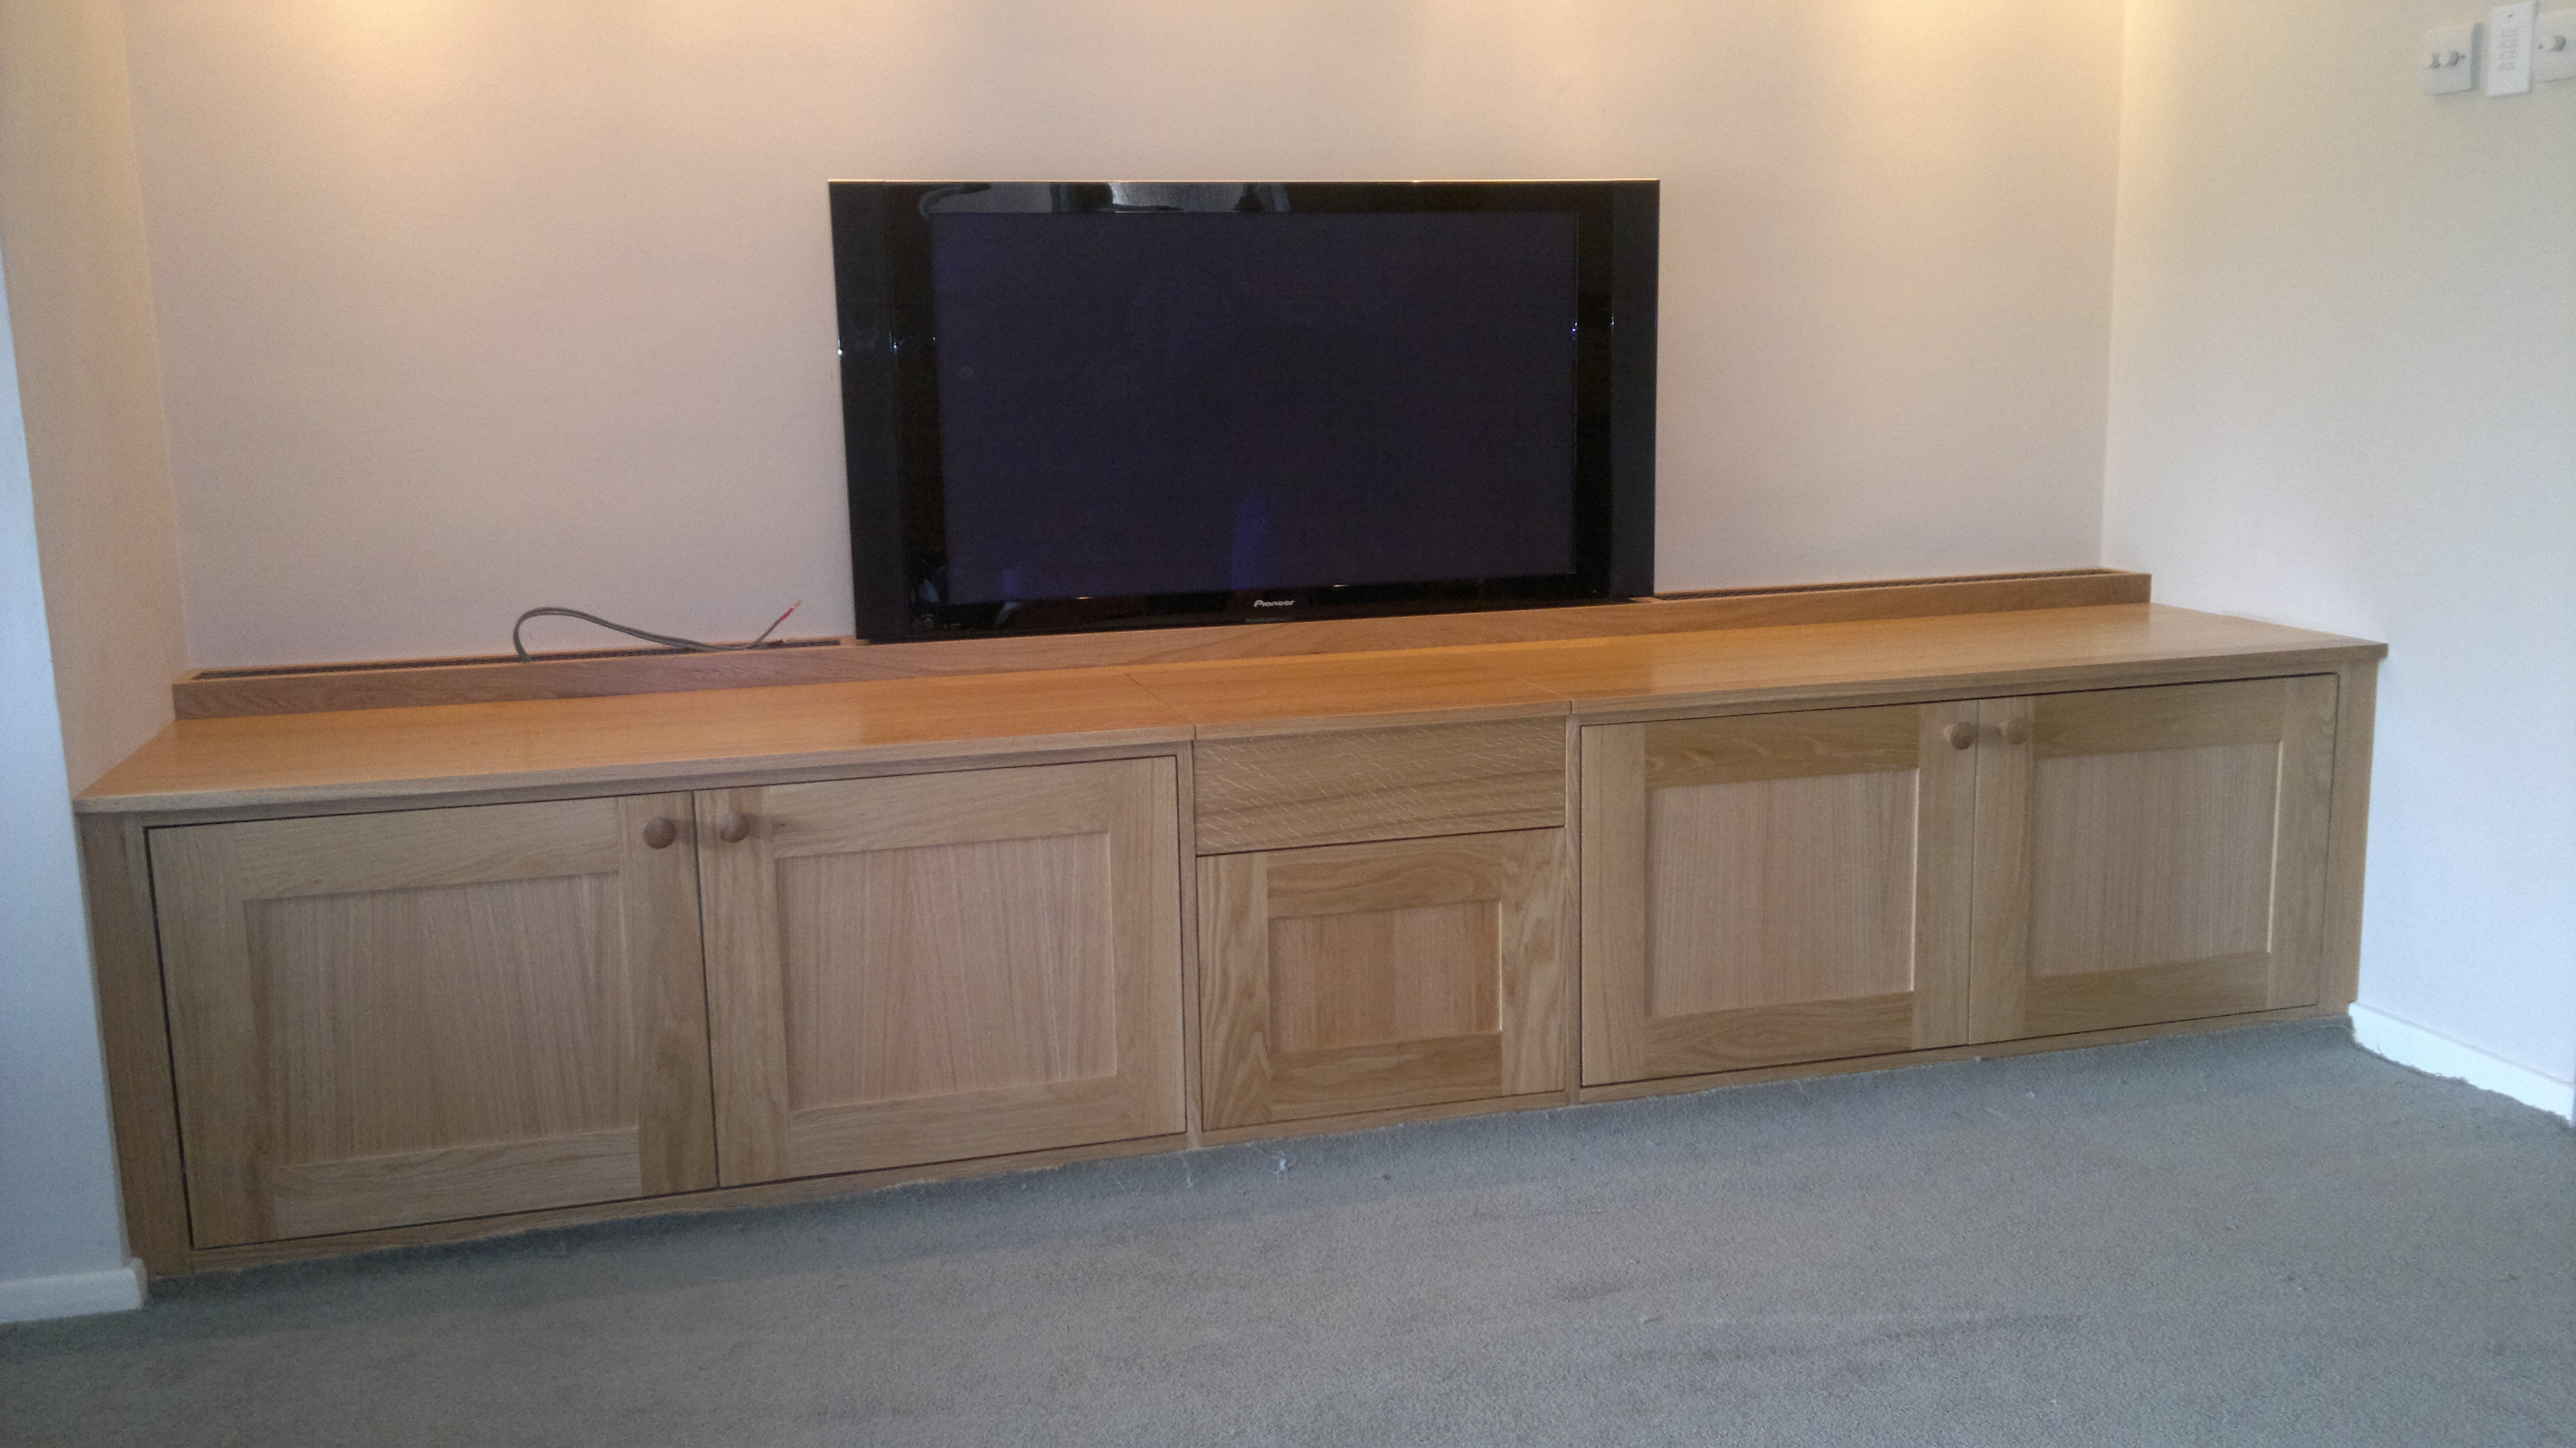 Low Level Tv Cabinet Tdk Joinery Bespoke Tvlcd Standstv Lifts For Bespoke Tv Cabinet (Image 11 of 15)